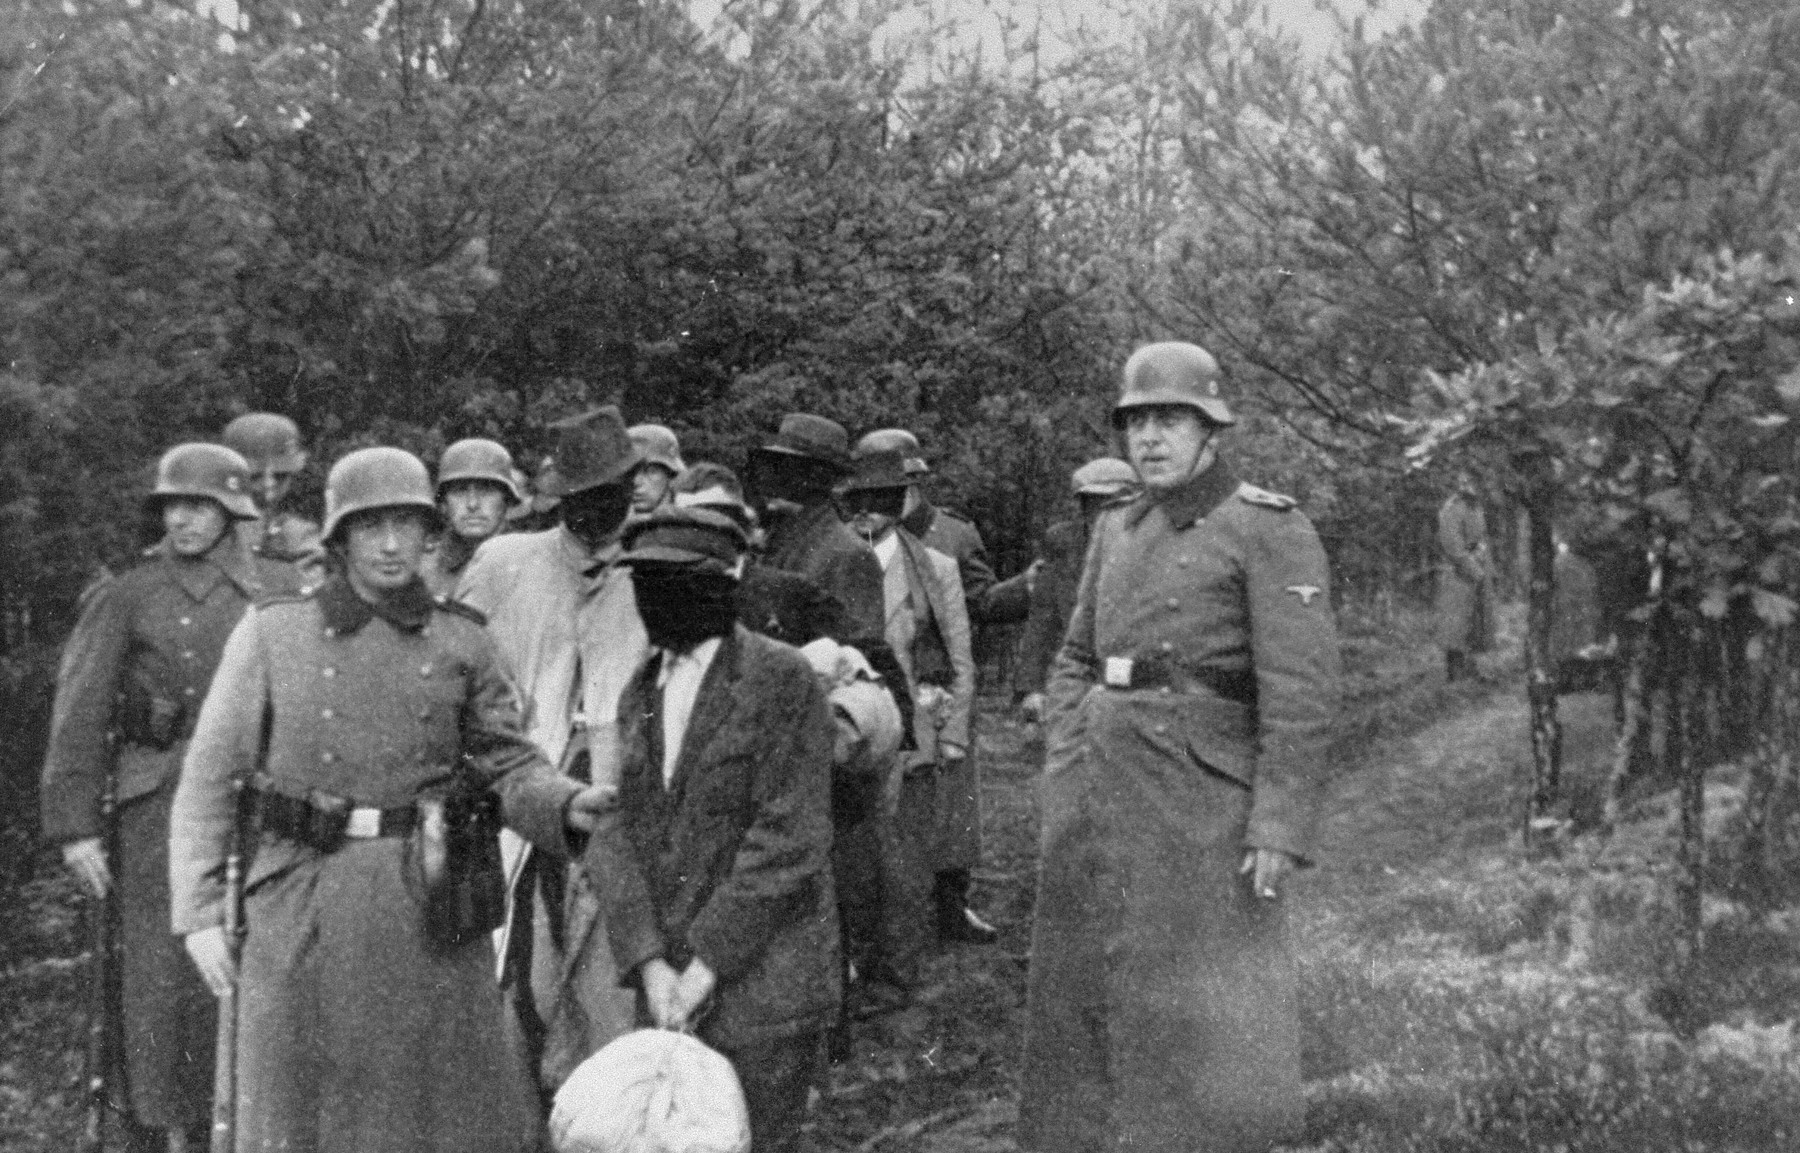 SS personnel lead a group of blindfolded Polish prisoners to an execution site in the Palmiry forest near Warsaw.  These civilians had been held in the Palmiry and Mokotow prisons in Warsaw.